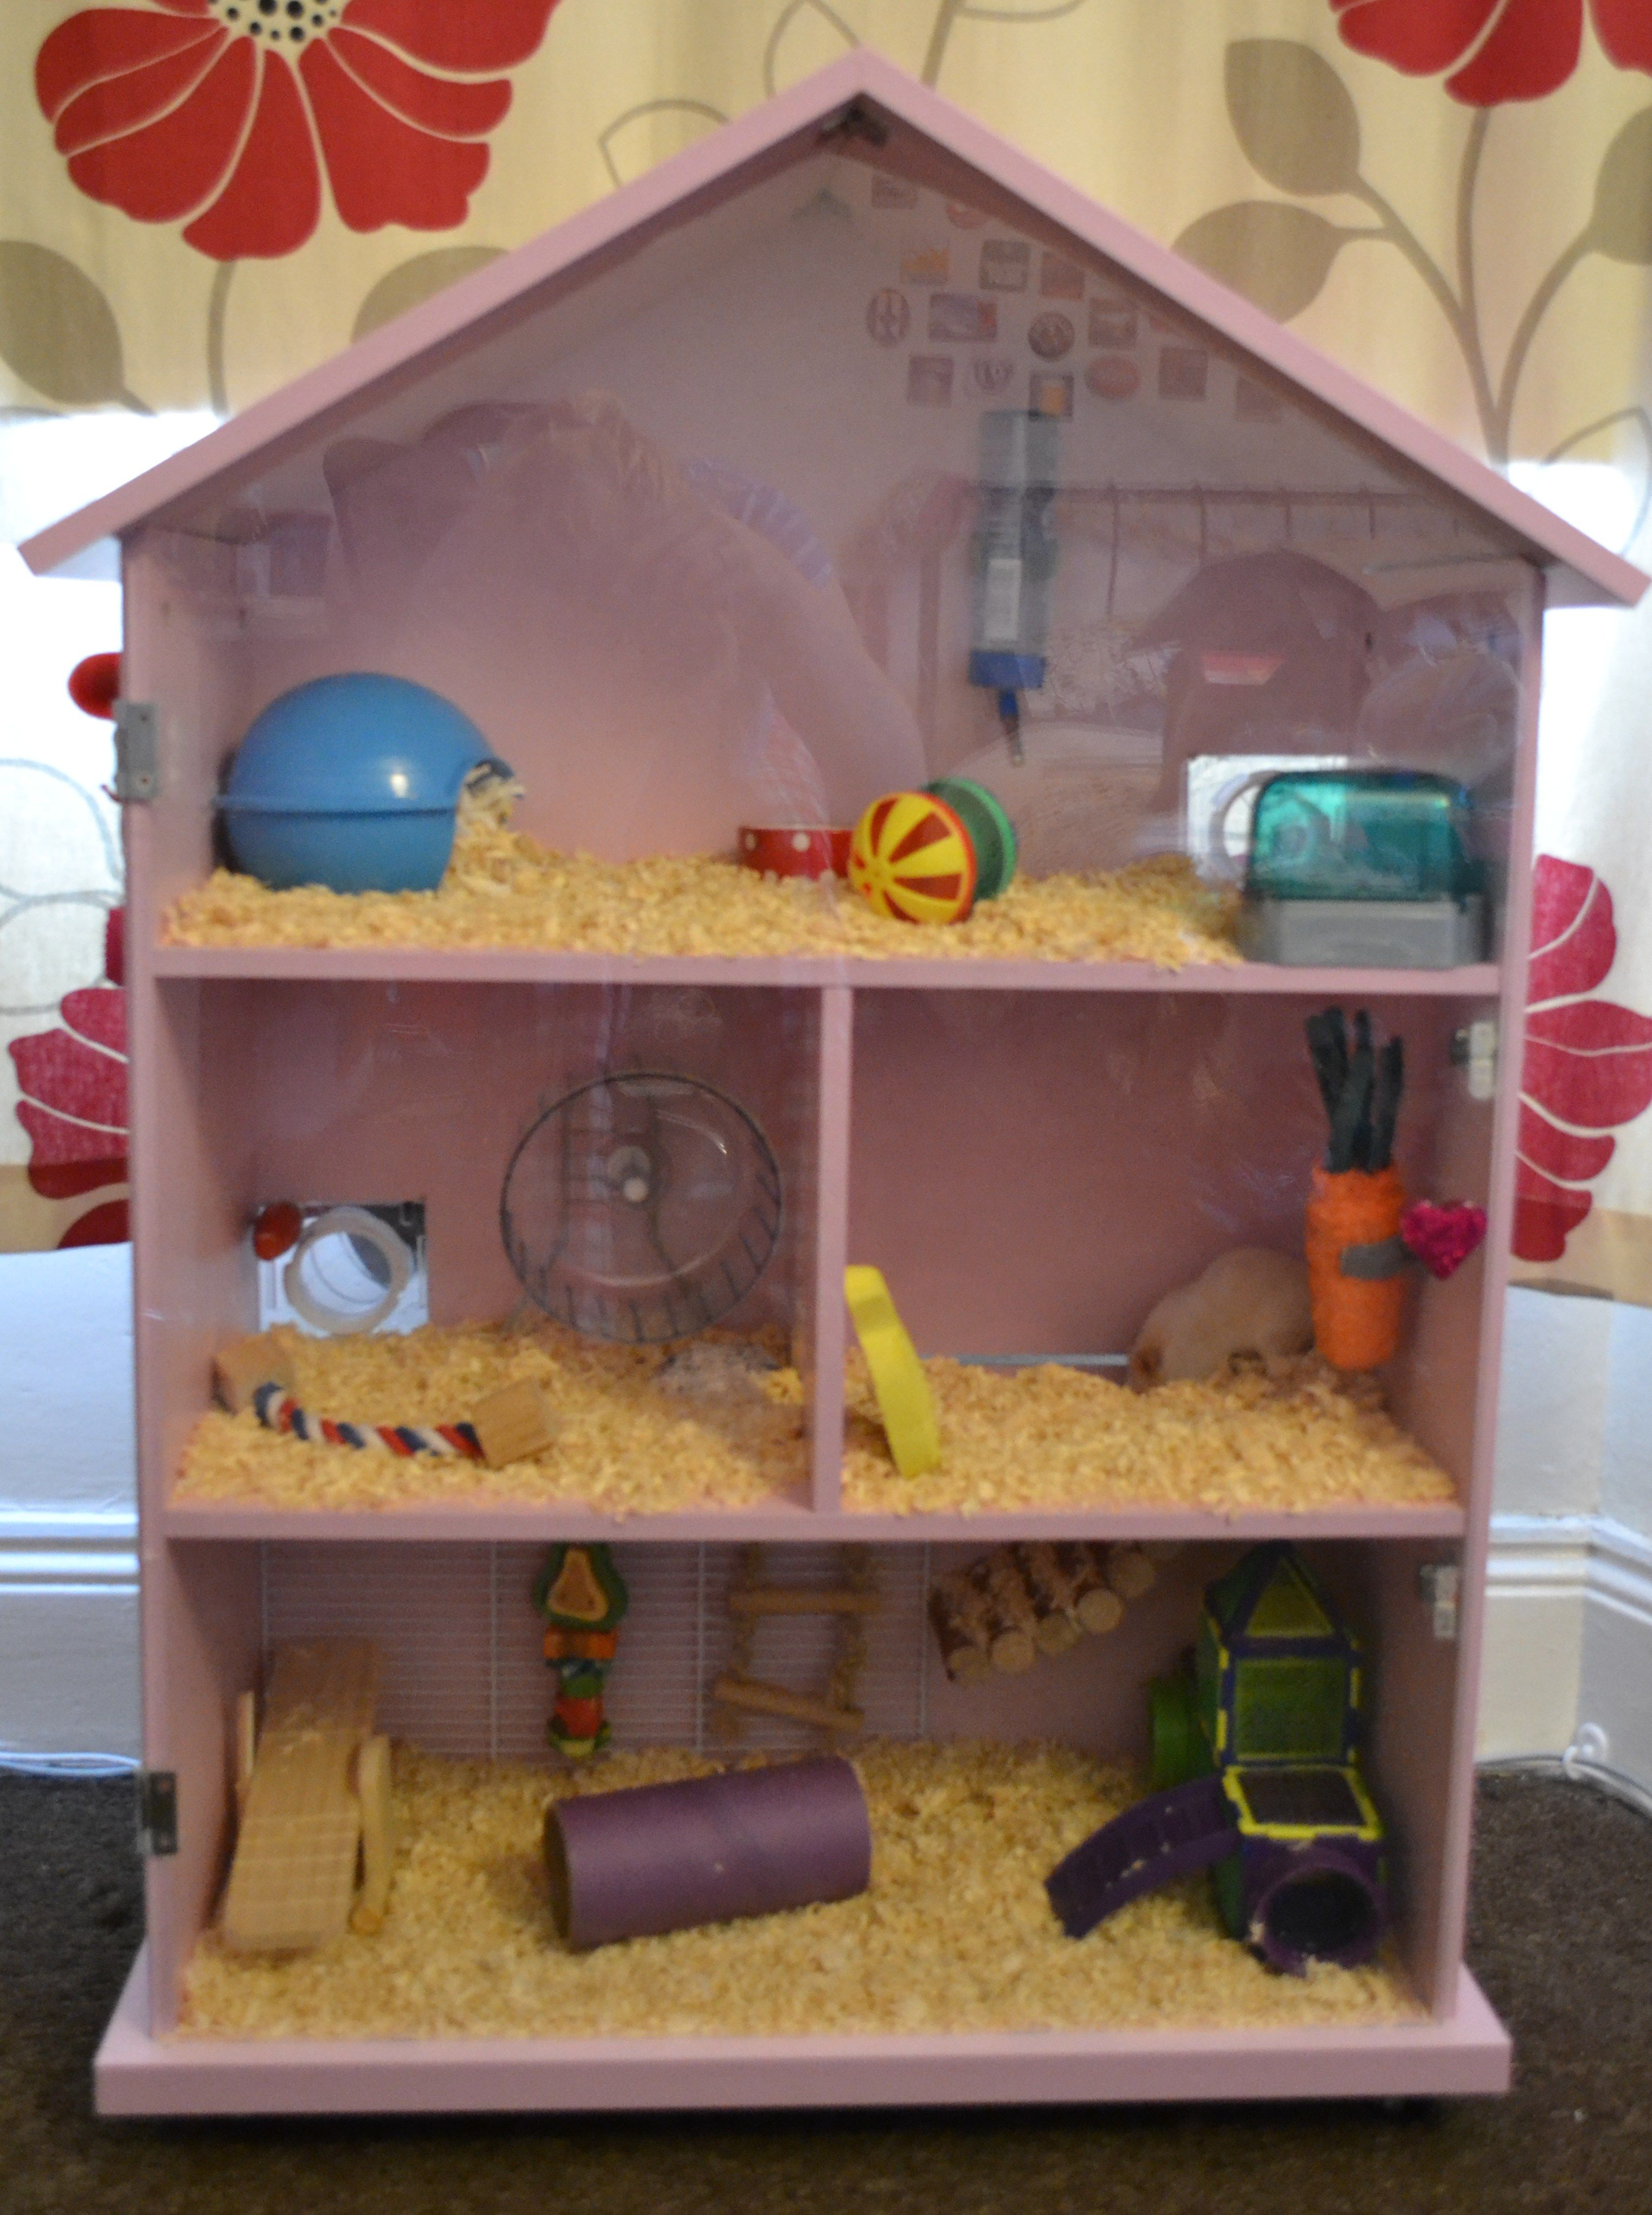 Just Finished This Hamster House For My Hamster Phoebe Hamster Homemade Diy Hamster Cages Hamster Toys Hamster House